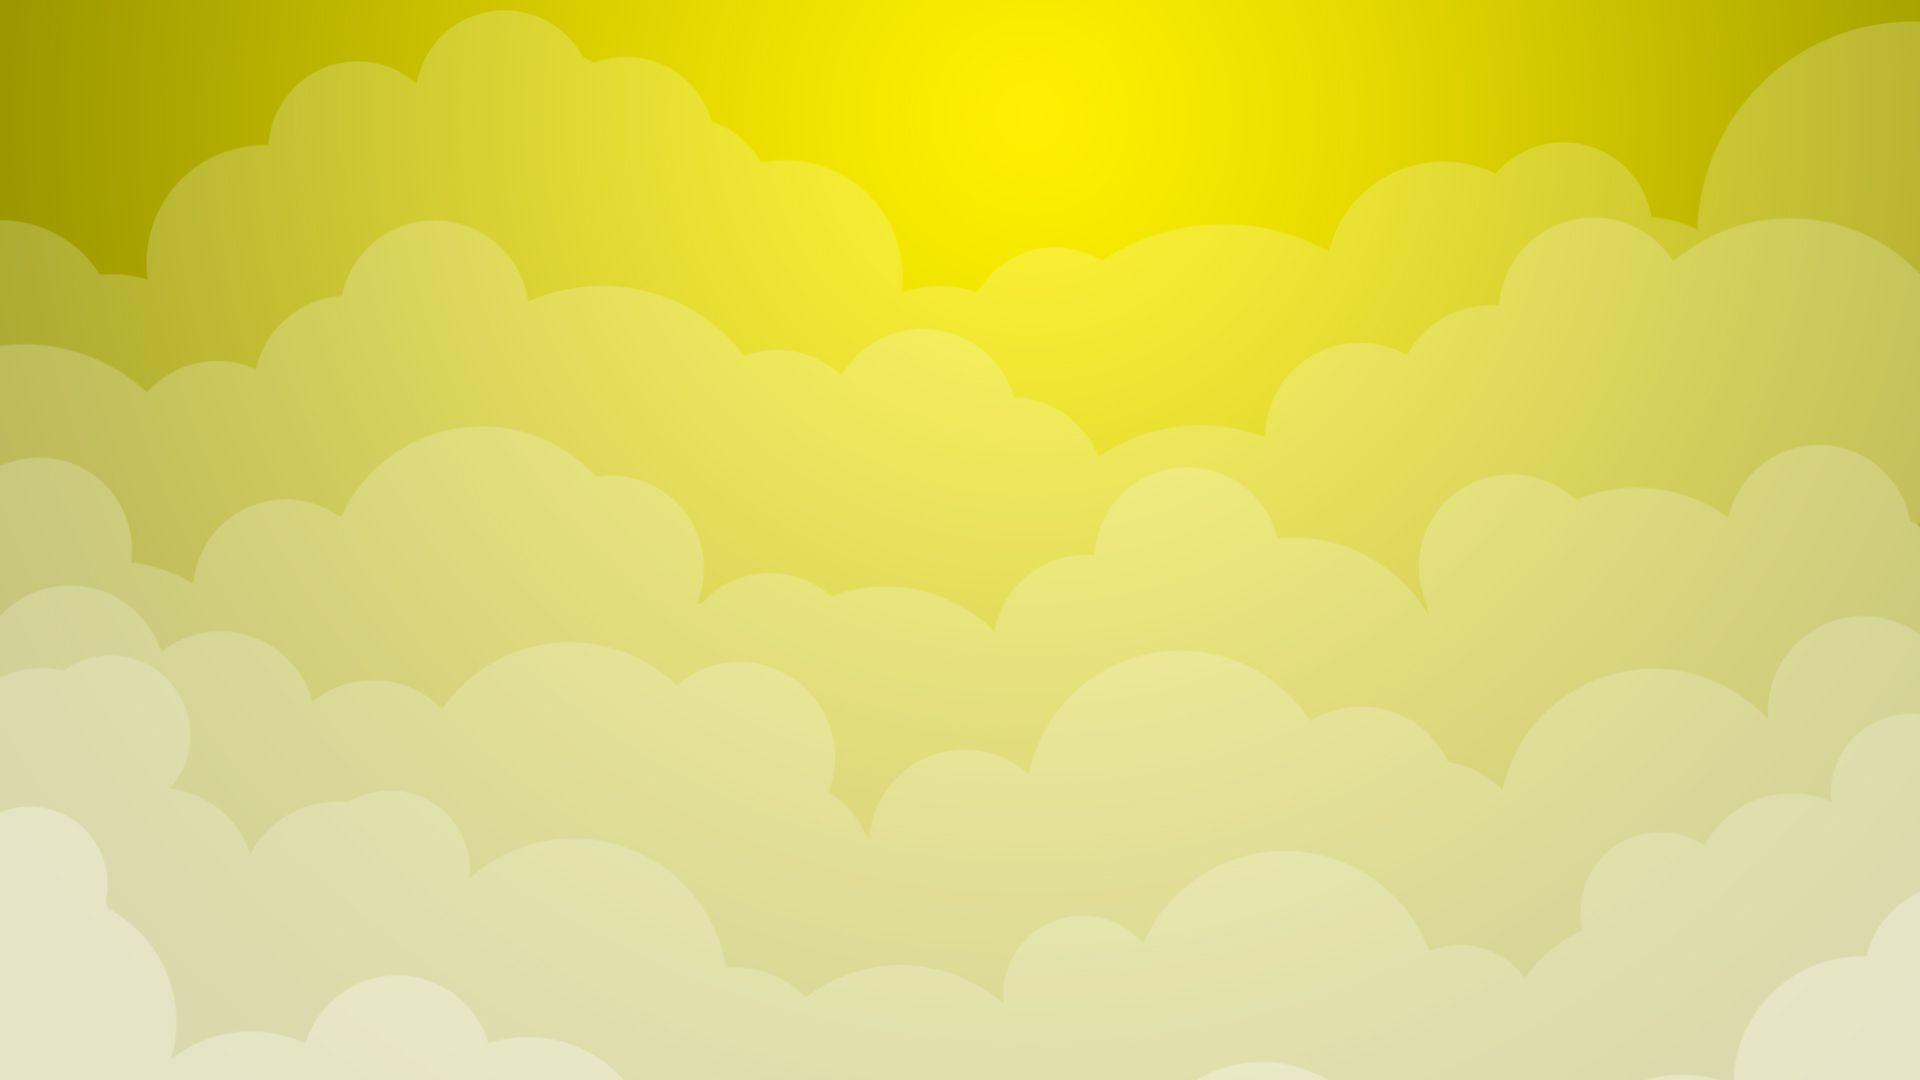 windows 8 logo yellow colour background wallpapers desktop - Pics To Colour In